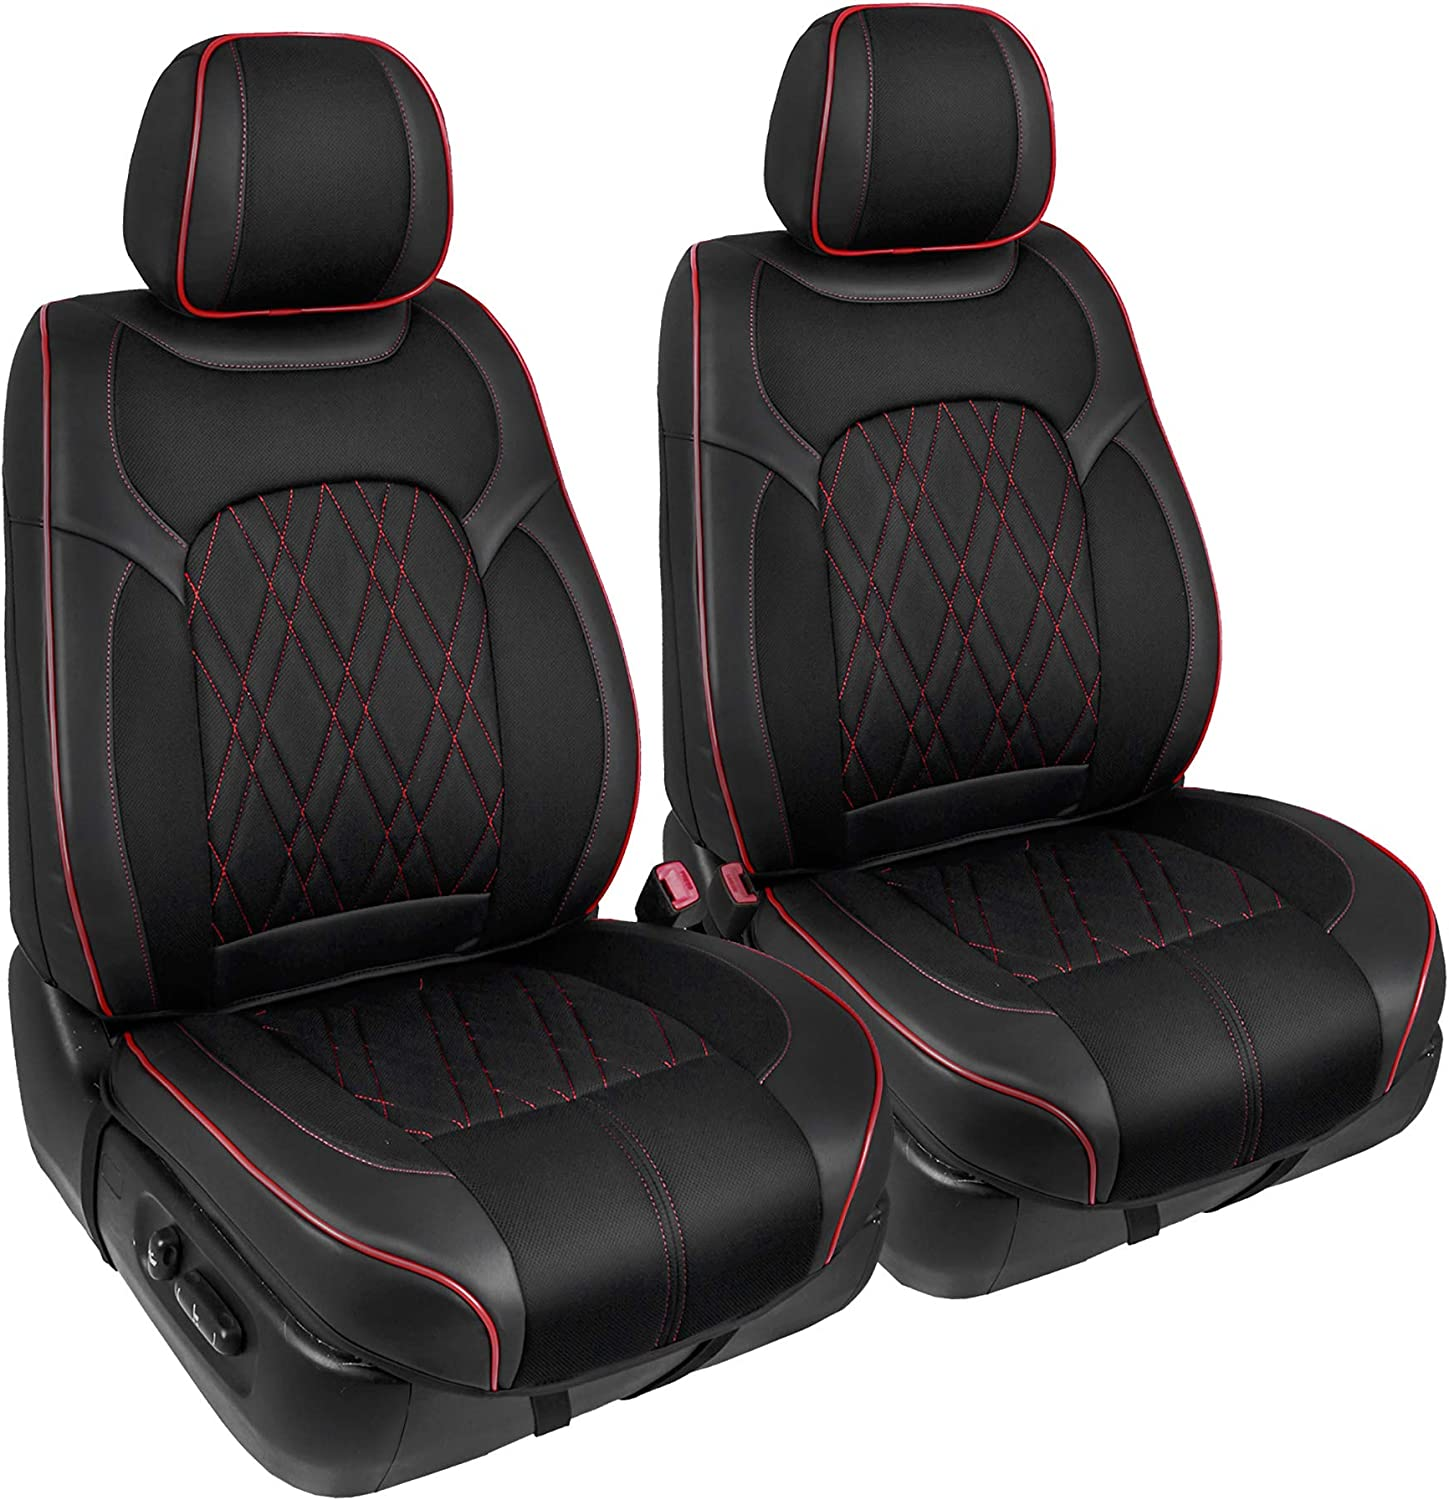 Universal Fit for Cars Truck Van SUV Season Guard Traveler Automotive Car Seat Covers Black with Red Accent 3D Semi-Custom Luxury Faux Leather